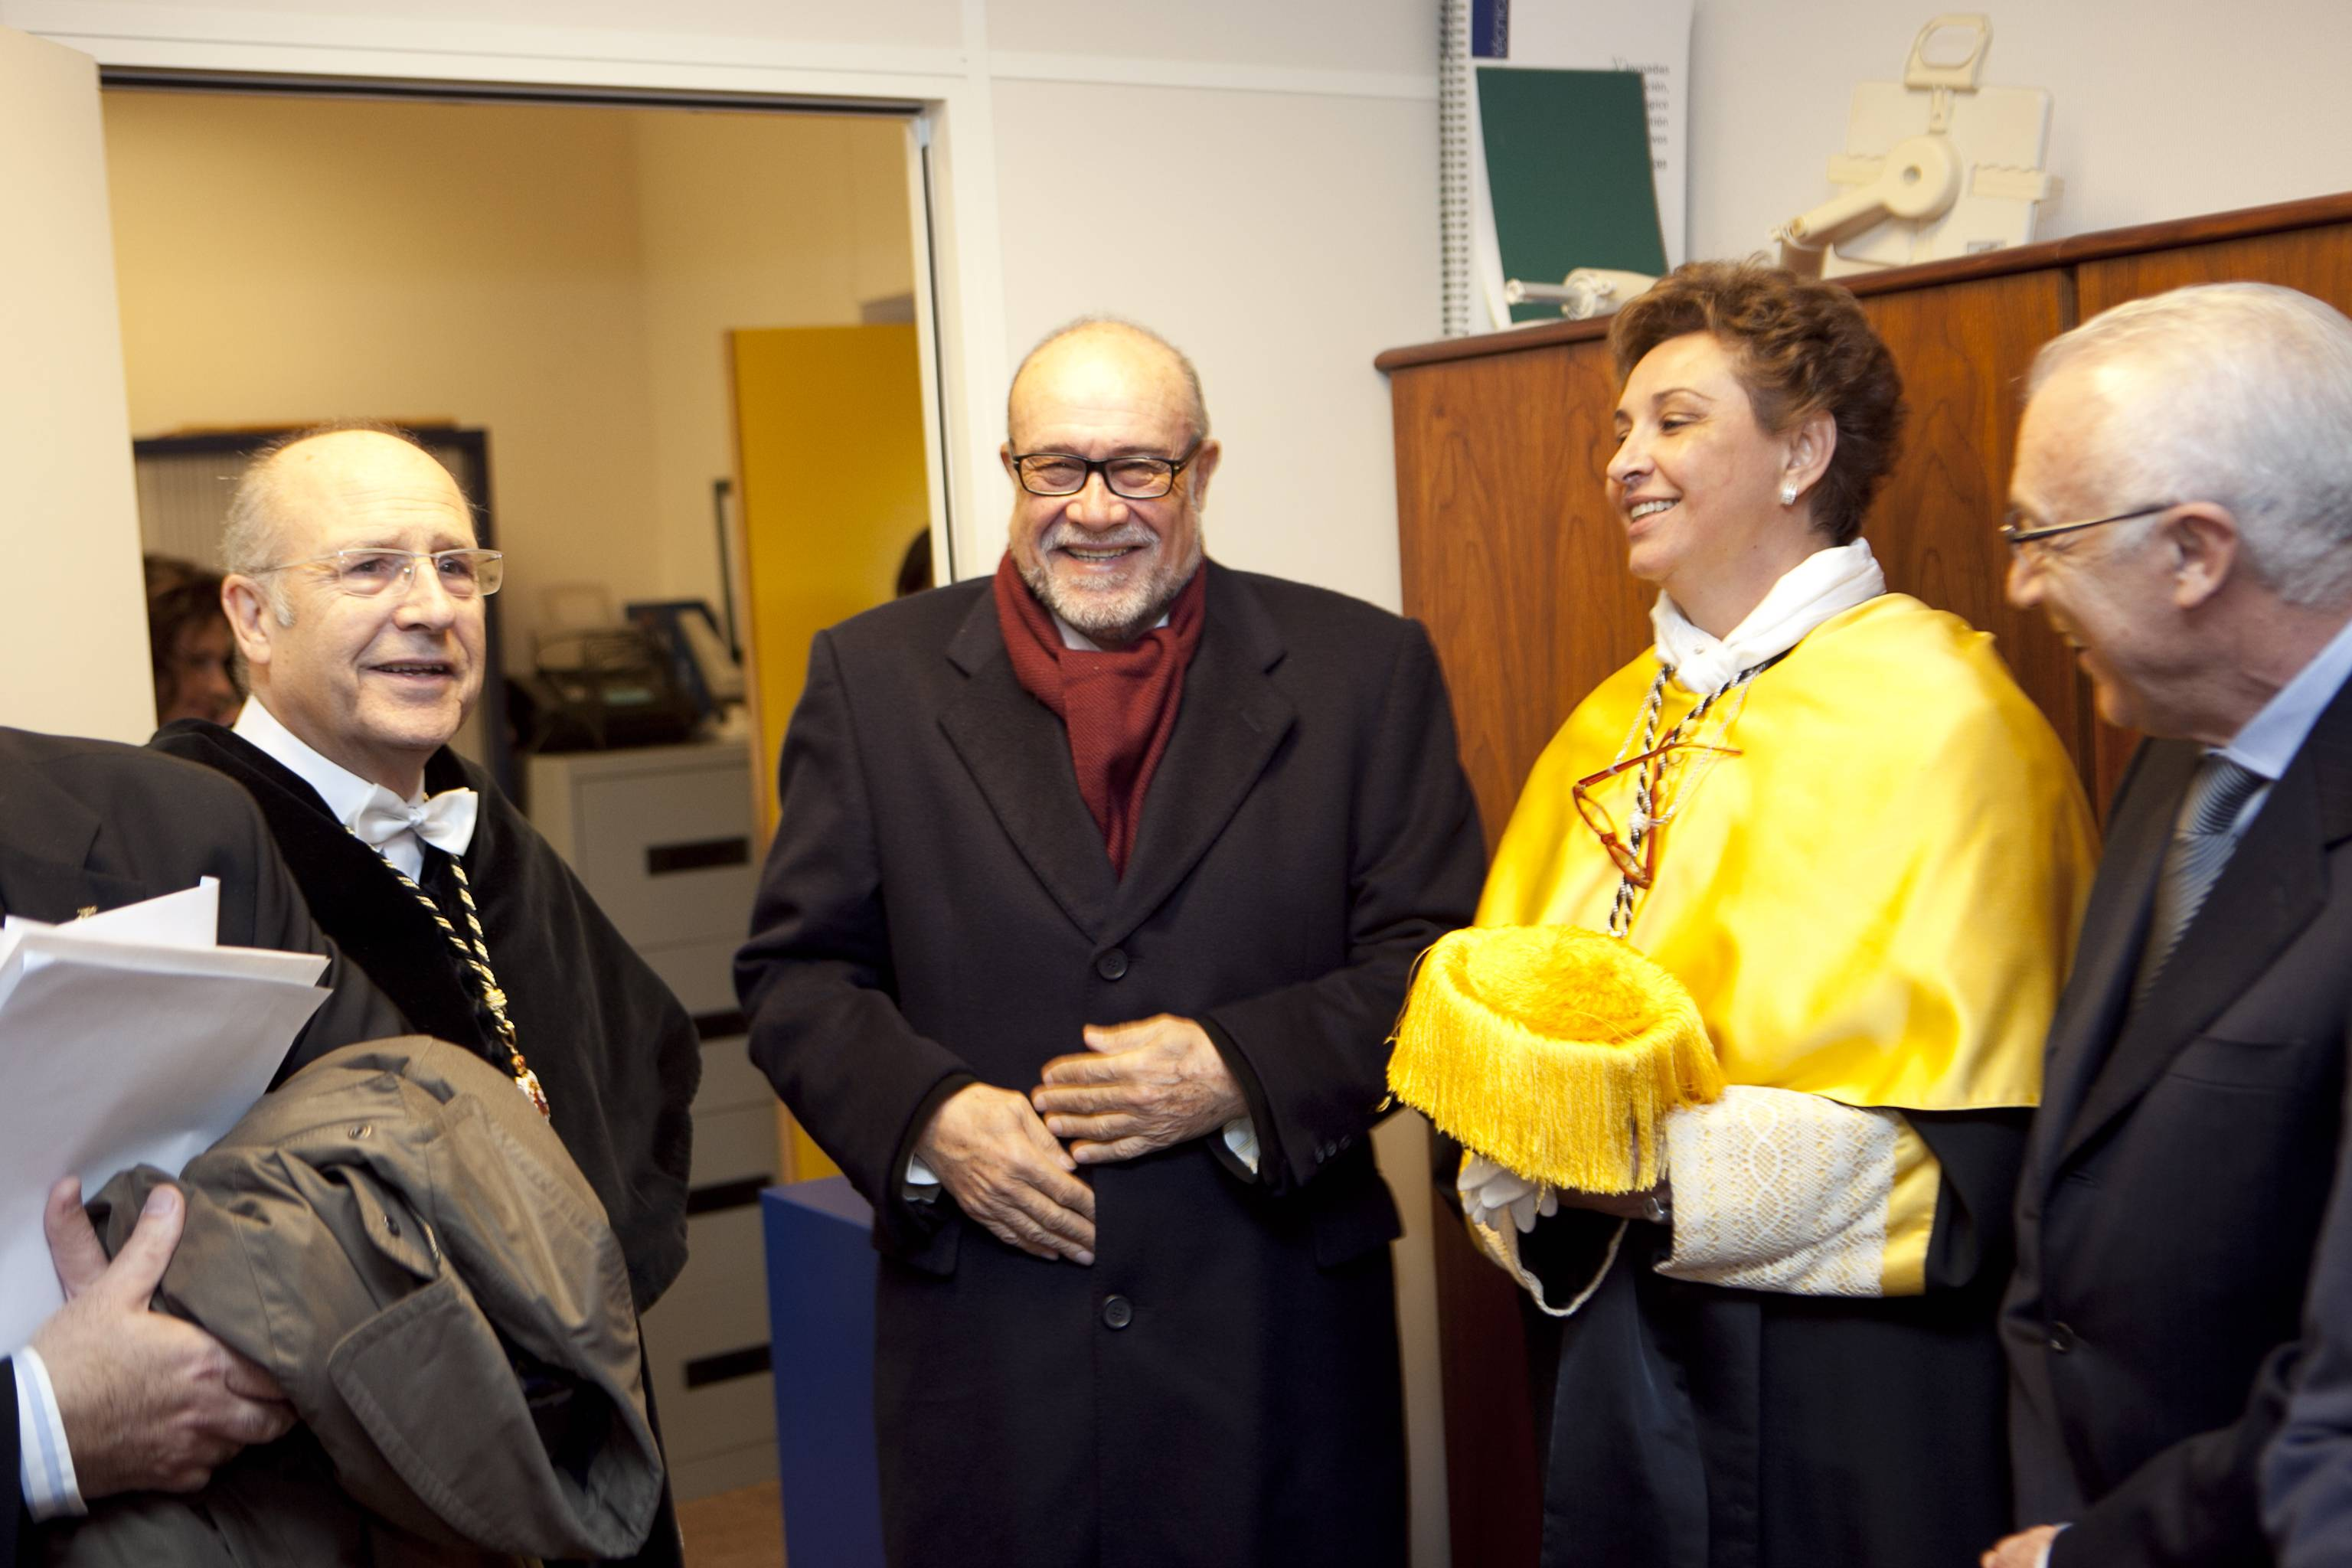 doctor-honoris-causa-luis-gamir_mg_0577.jpg